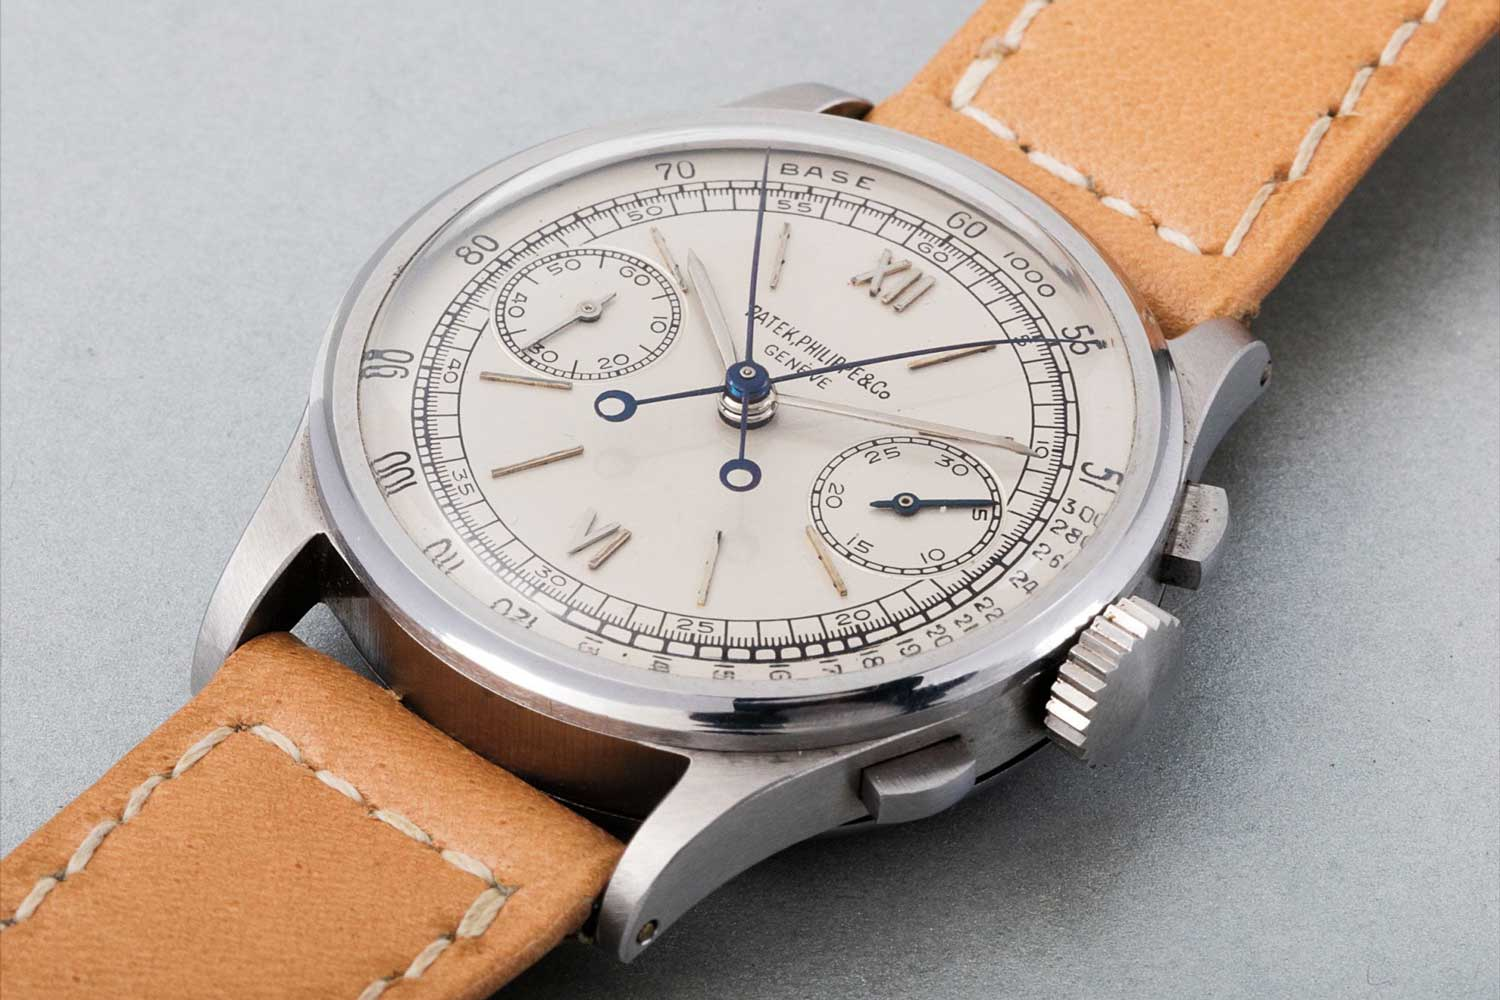 The ref. 1436, produced from 1938 to 1971, was the first serially .produced split seconds chronograph by Patek Philippe.